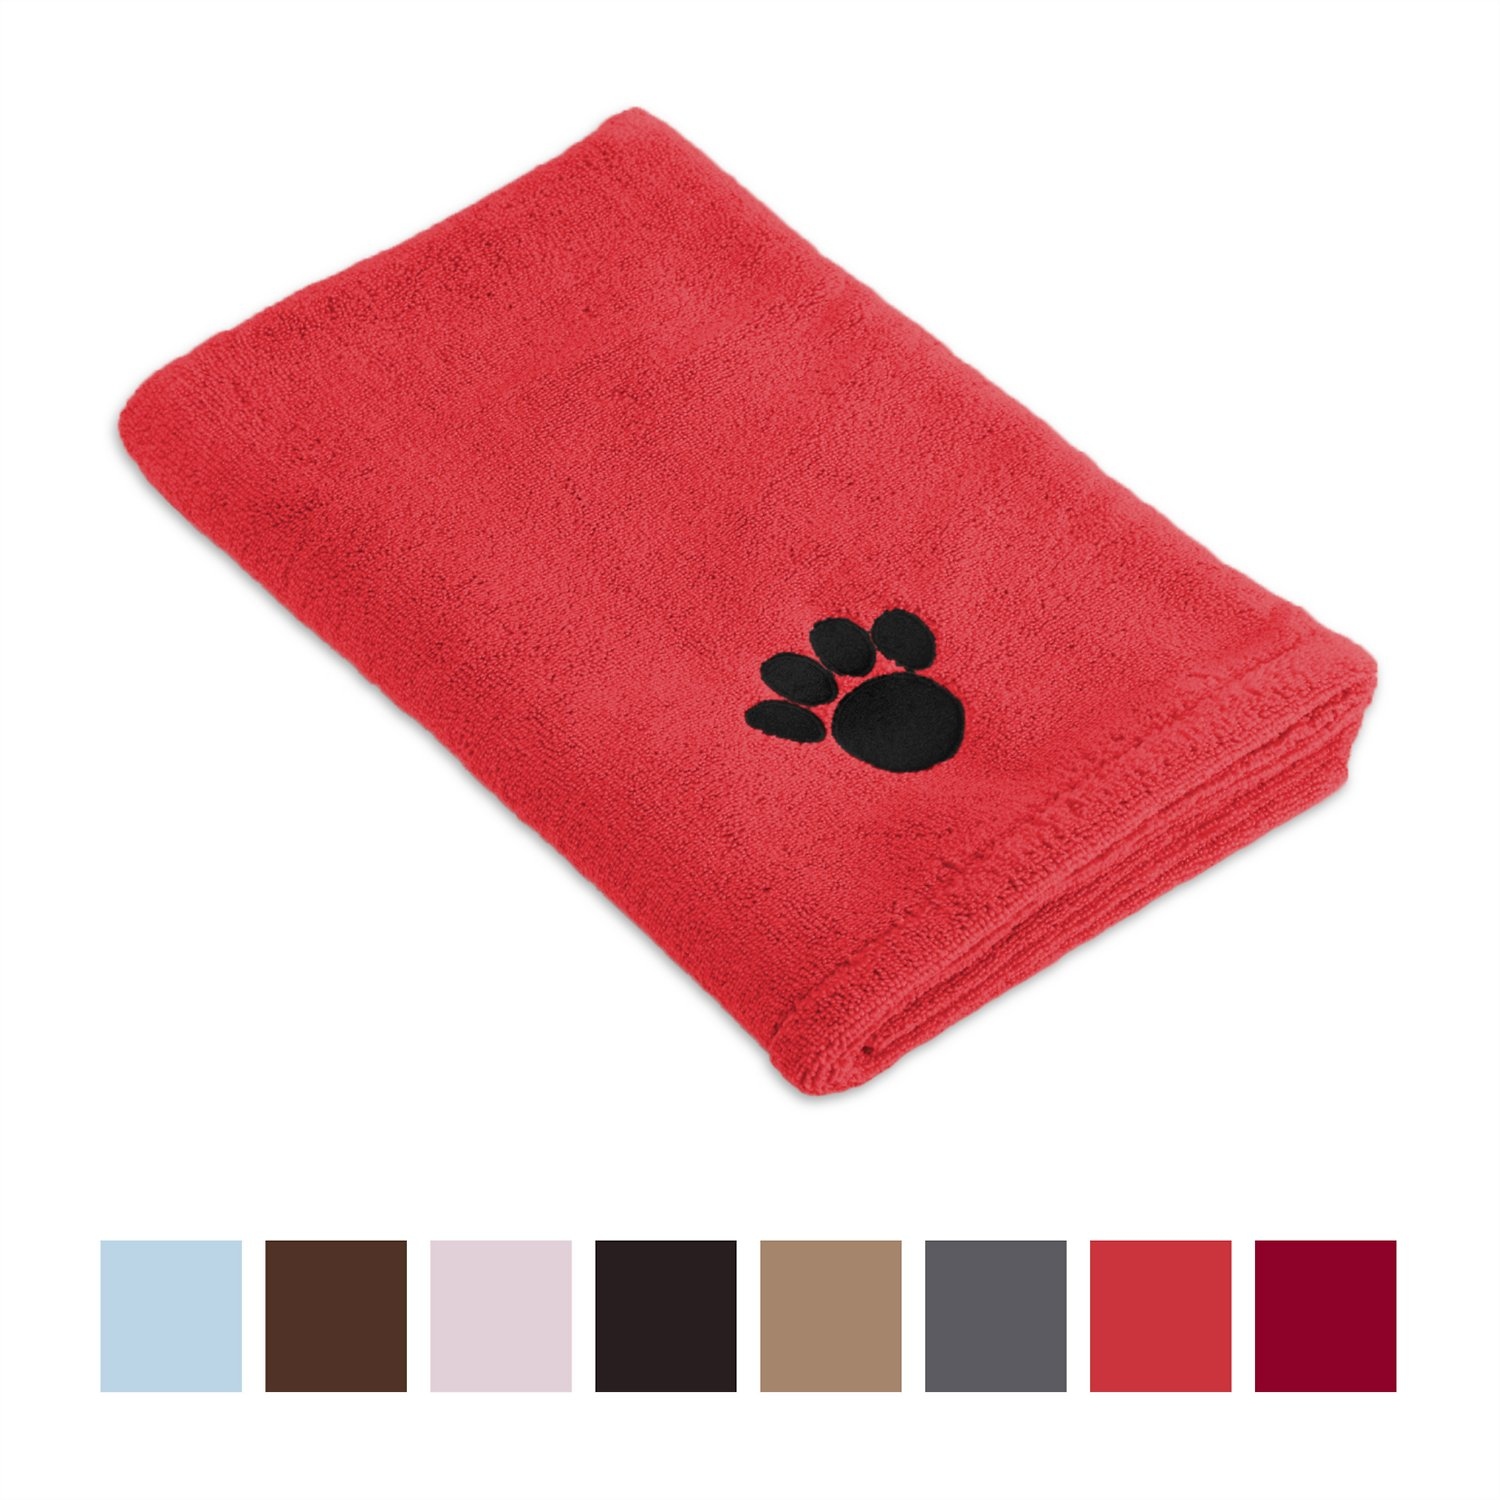 Red Microfiber Bath Towels: Bone Dry Embroidered Paw Print Microfiber Bath Towel, Red